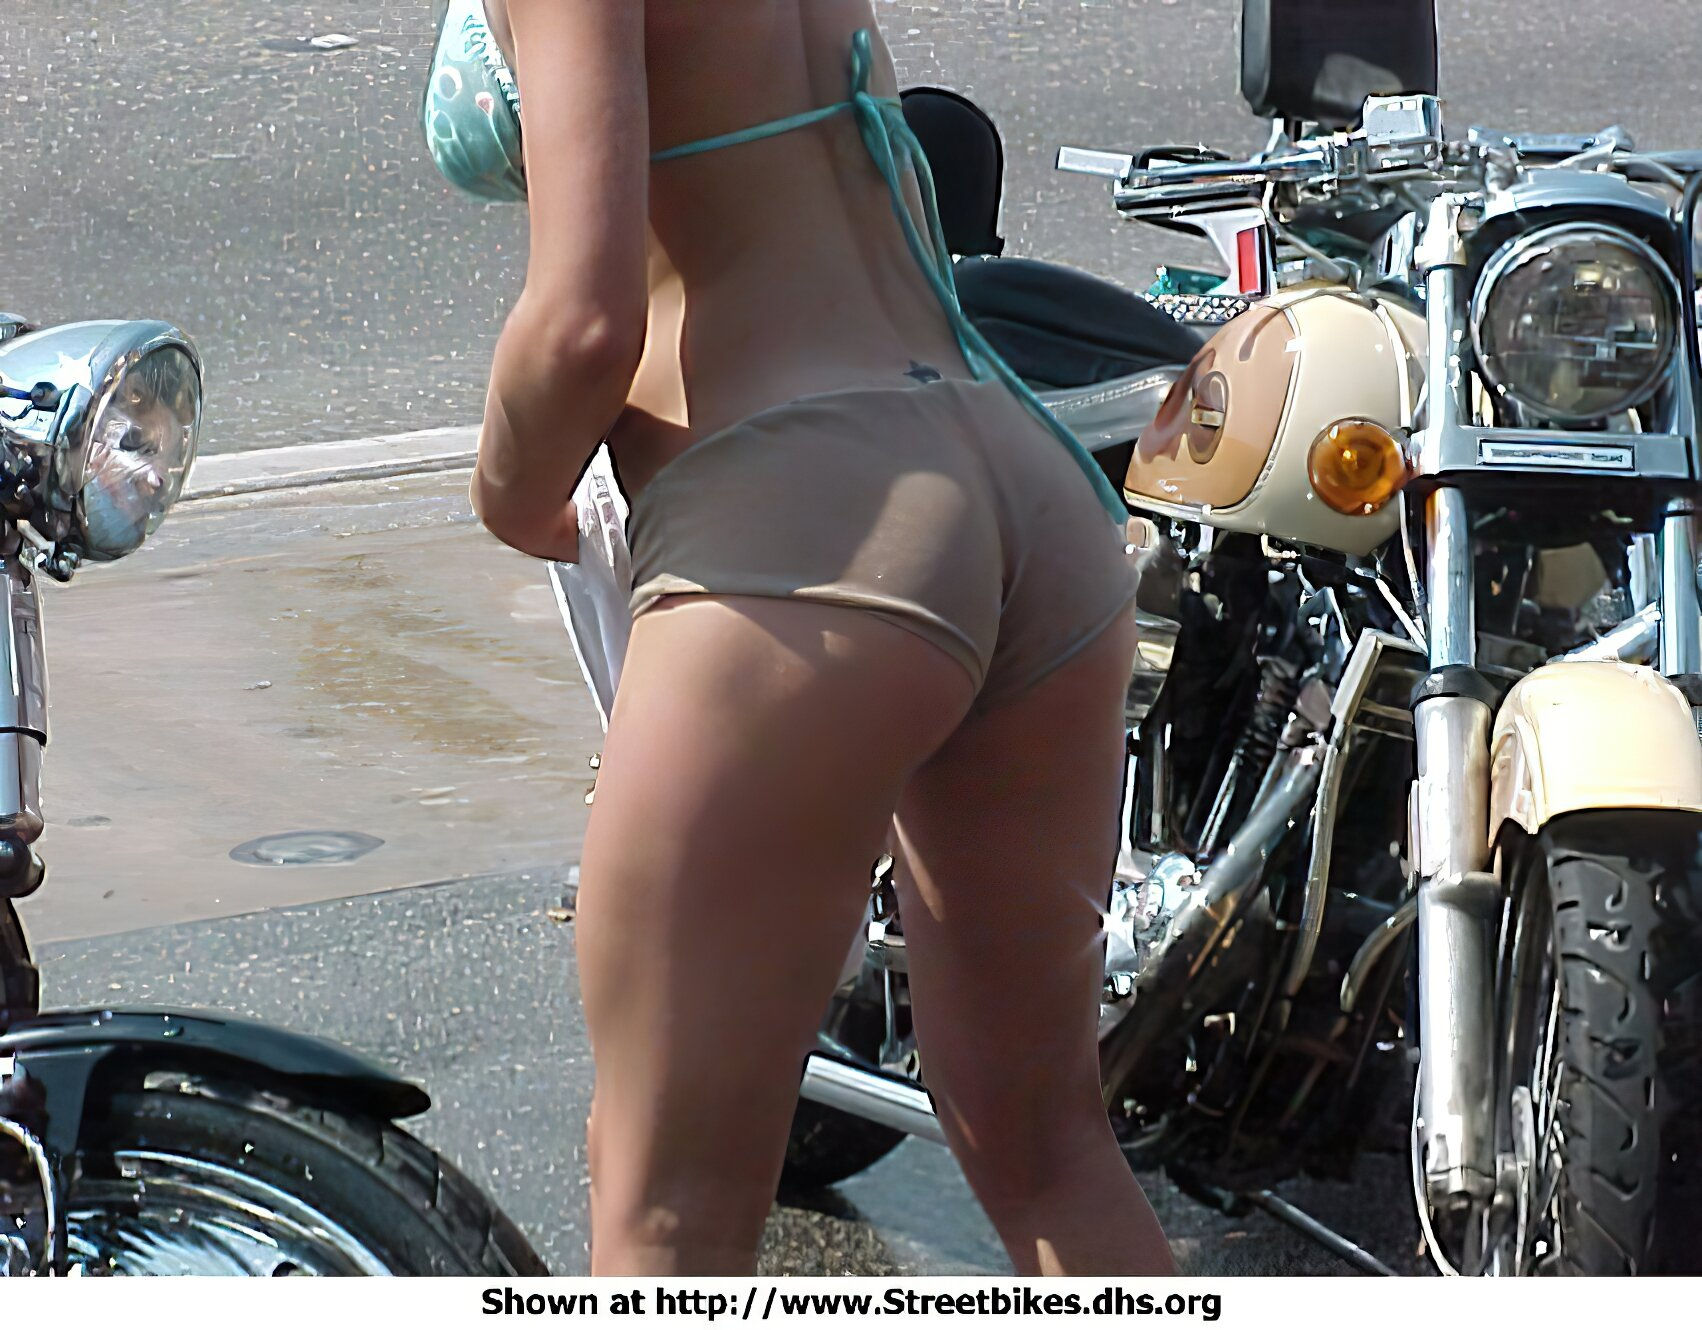 Harley-Davidson Unknown (HD) - ID: 109